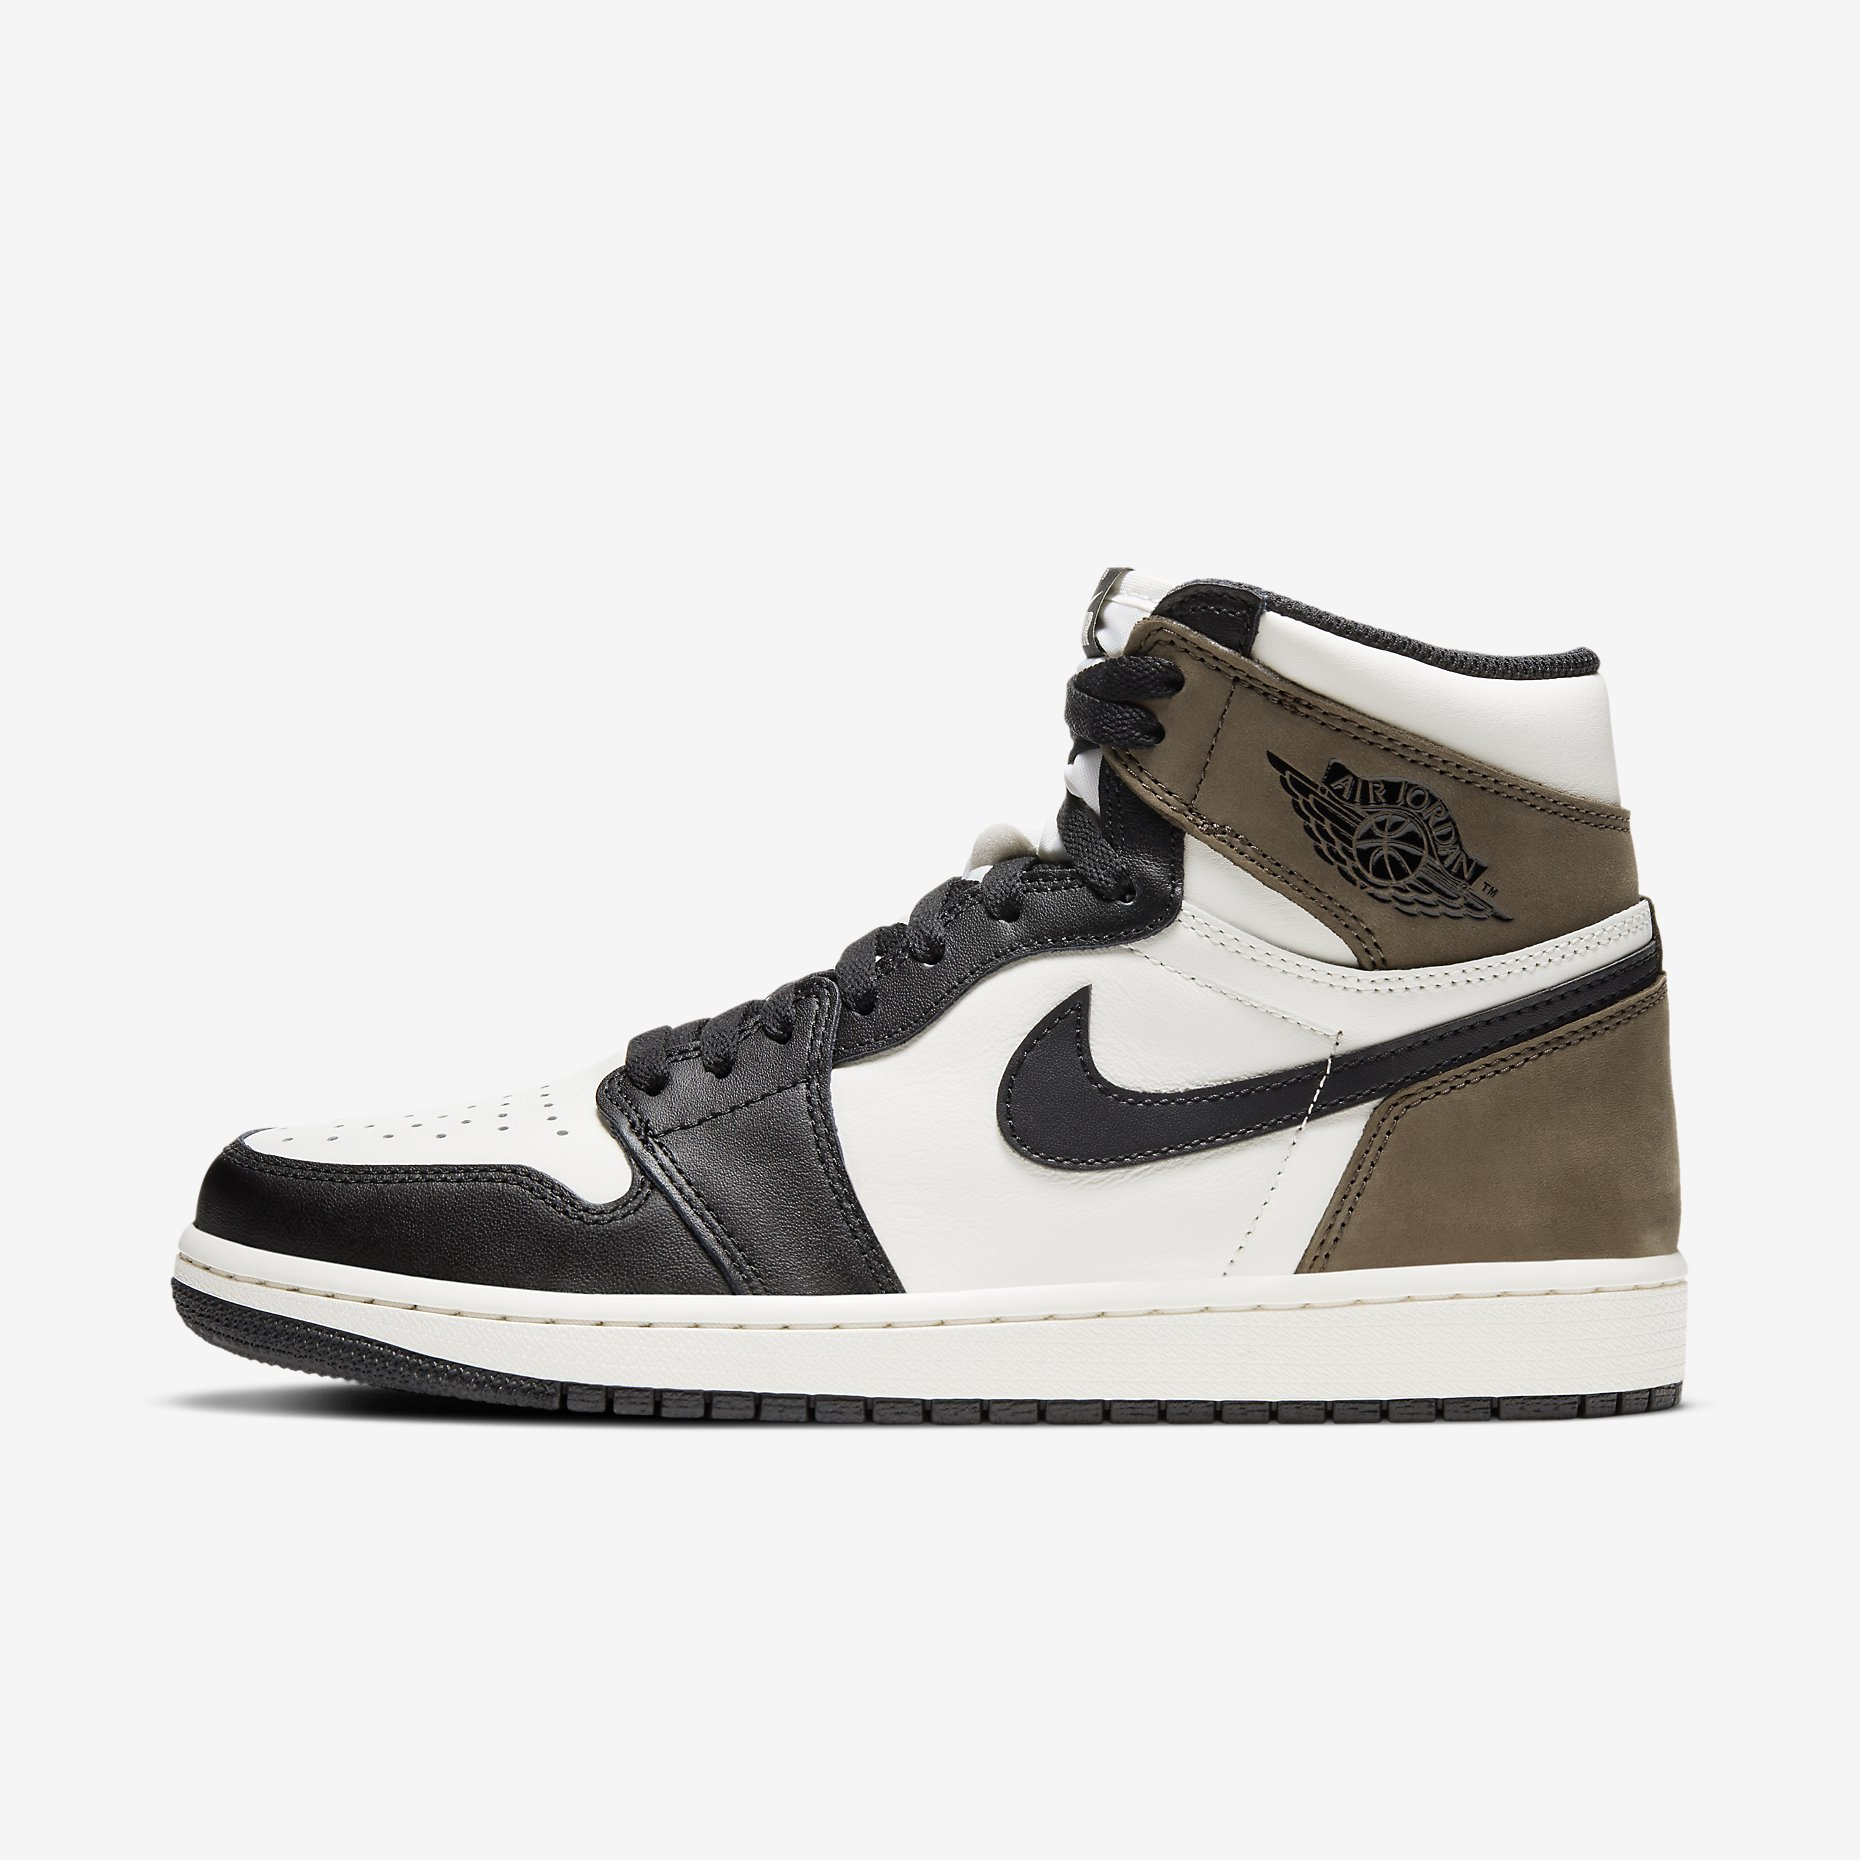 Air Jordan 1 Retro High OG 'Black Mocha'}